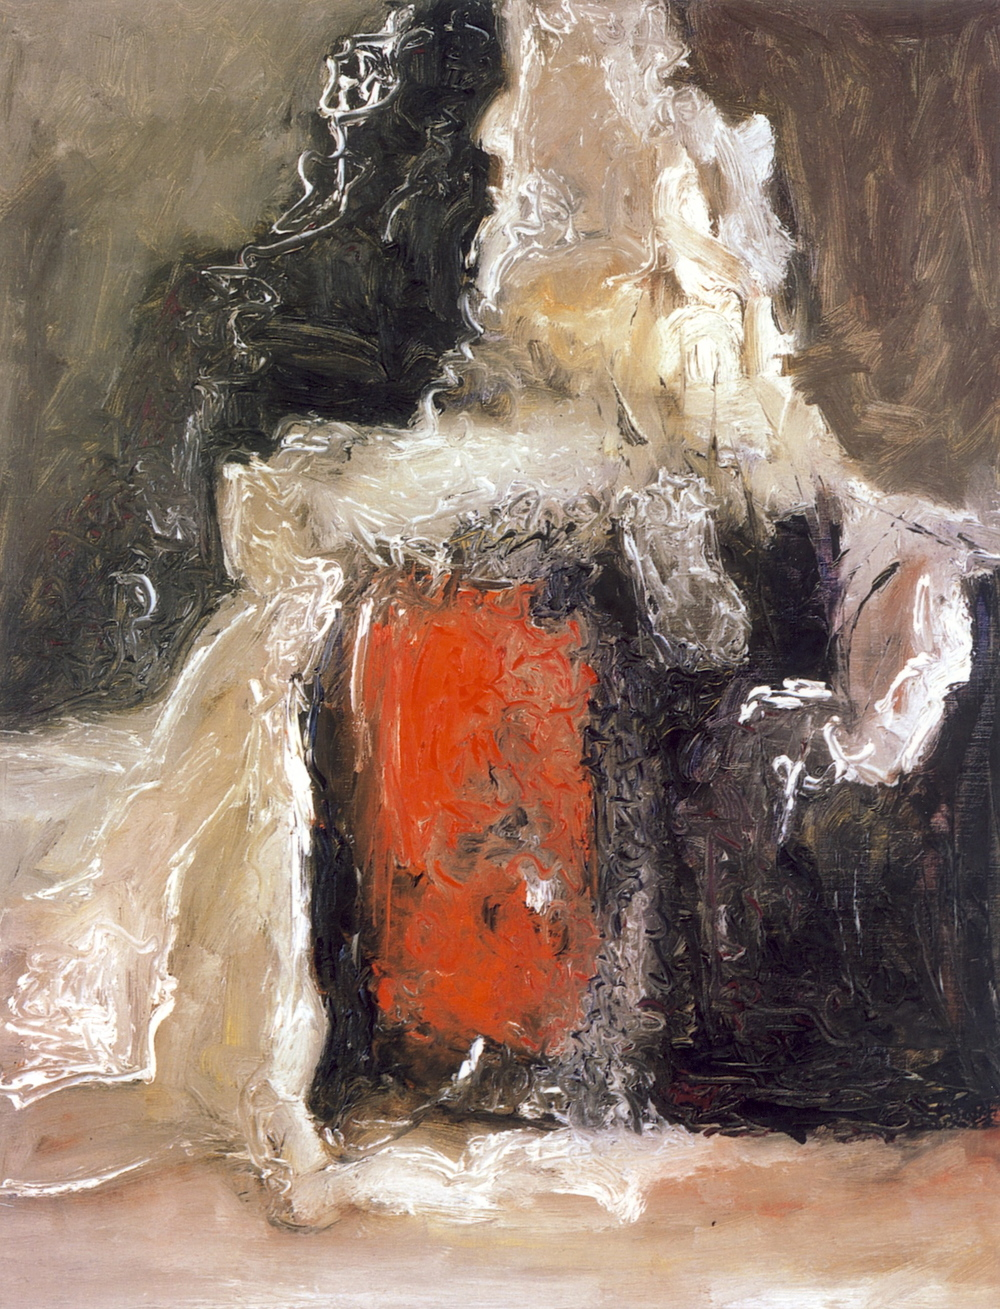 senza titolo, 1964, olio su tela, cm 92 x 73    untitled, 1964, oil on canvas, cm 92 x 73